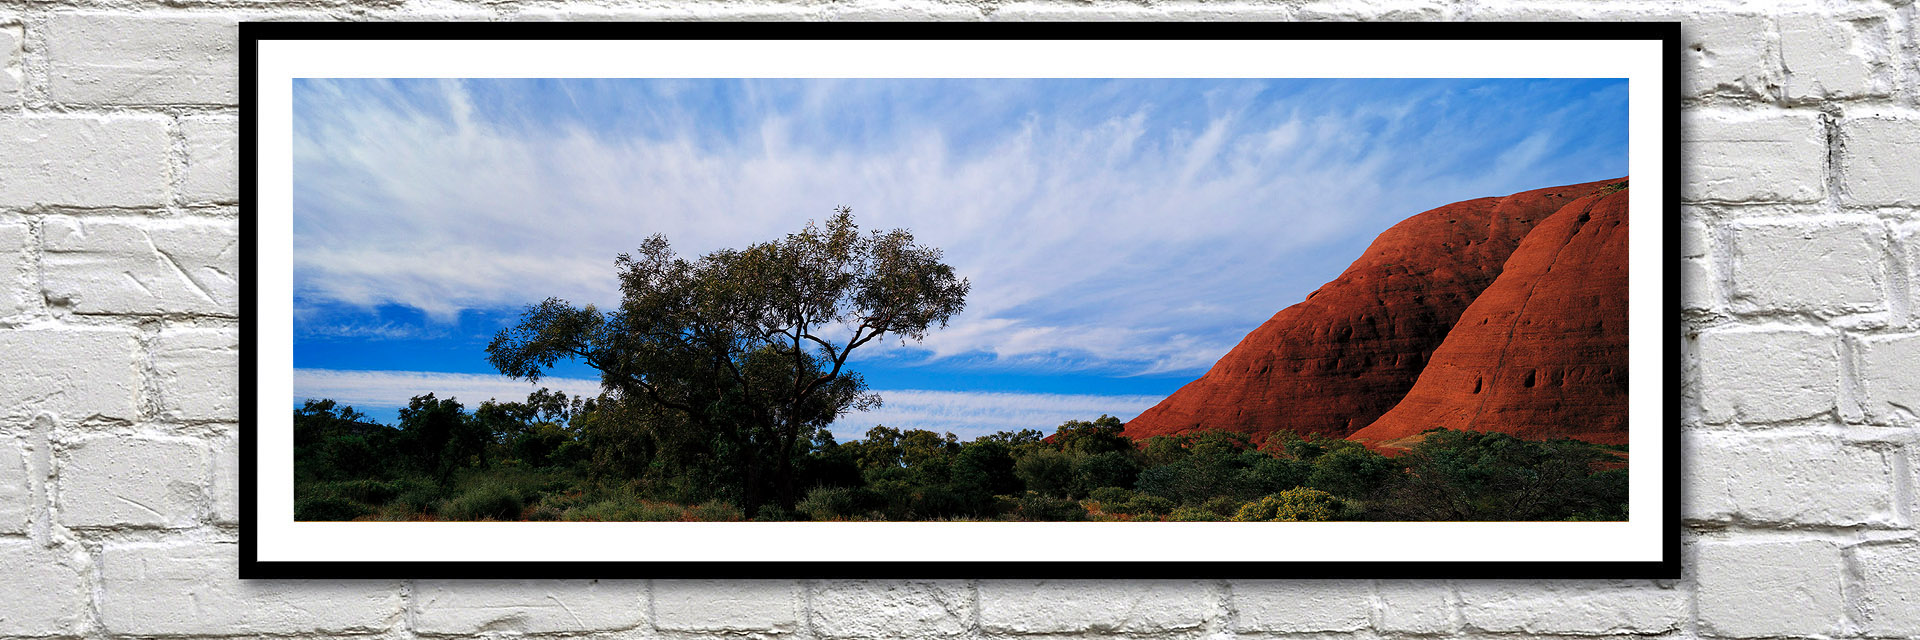 Office art ideas colourful world landscapes